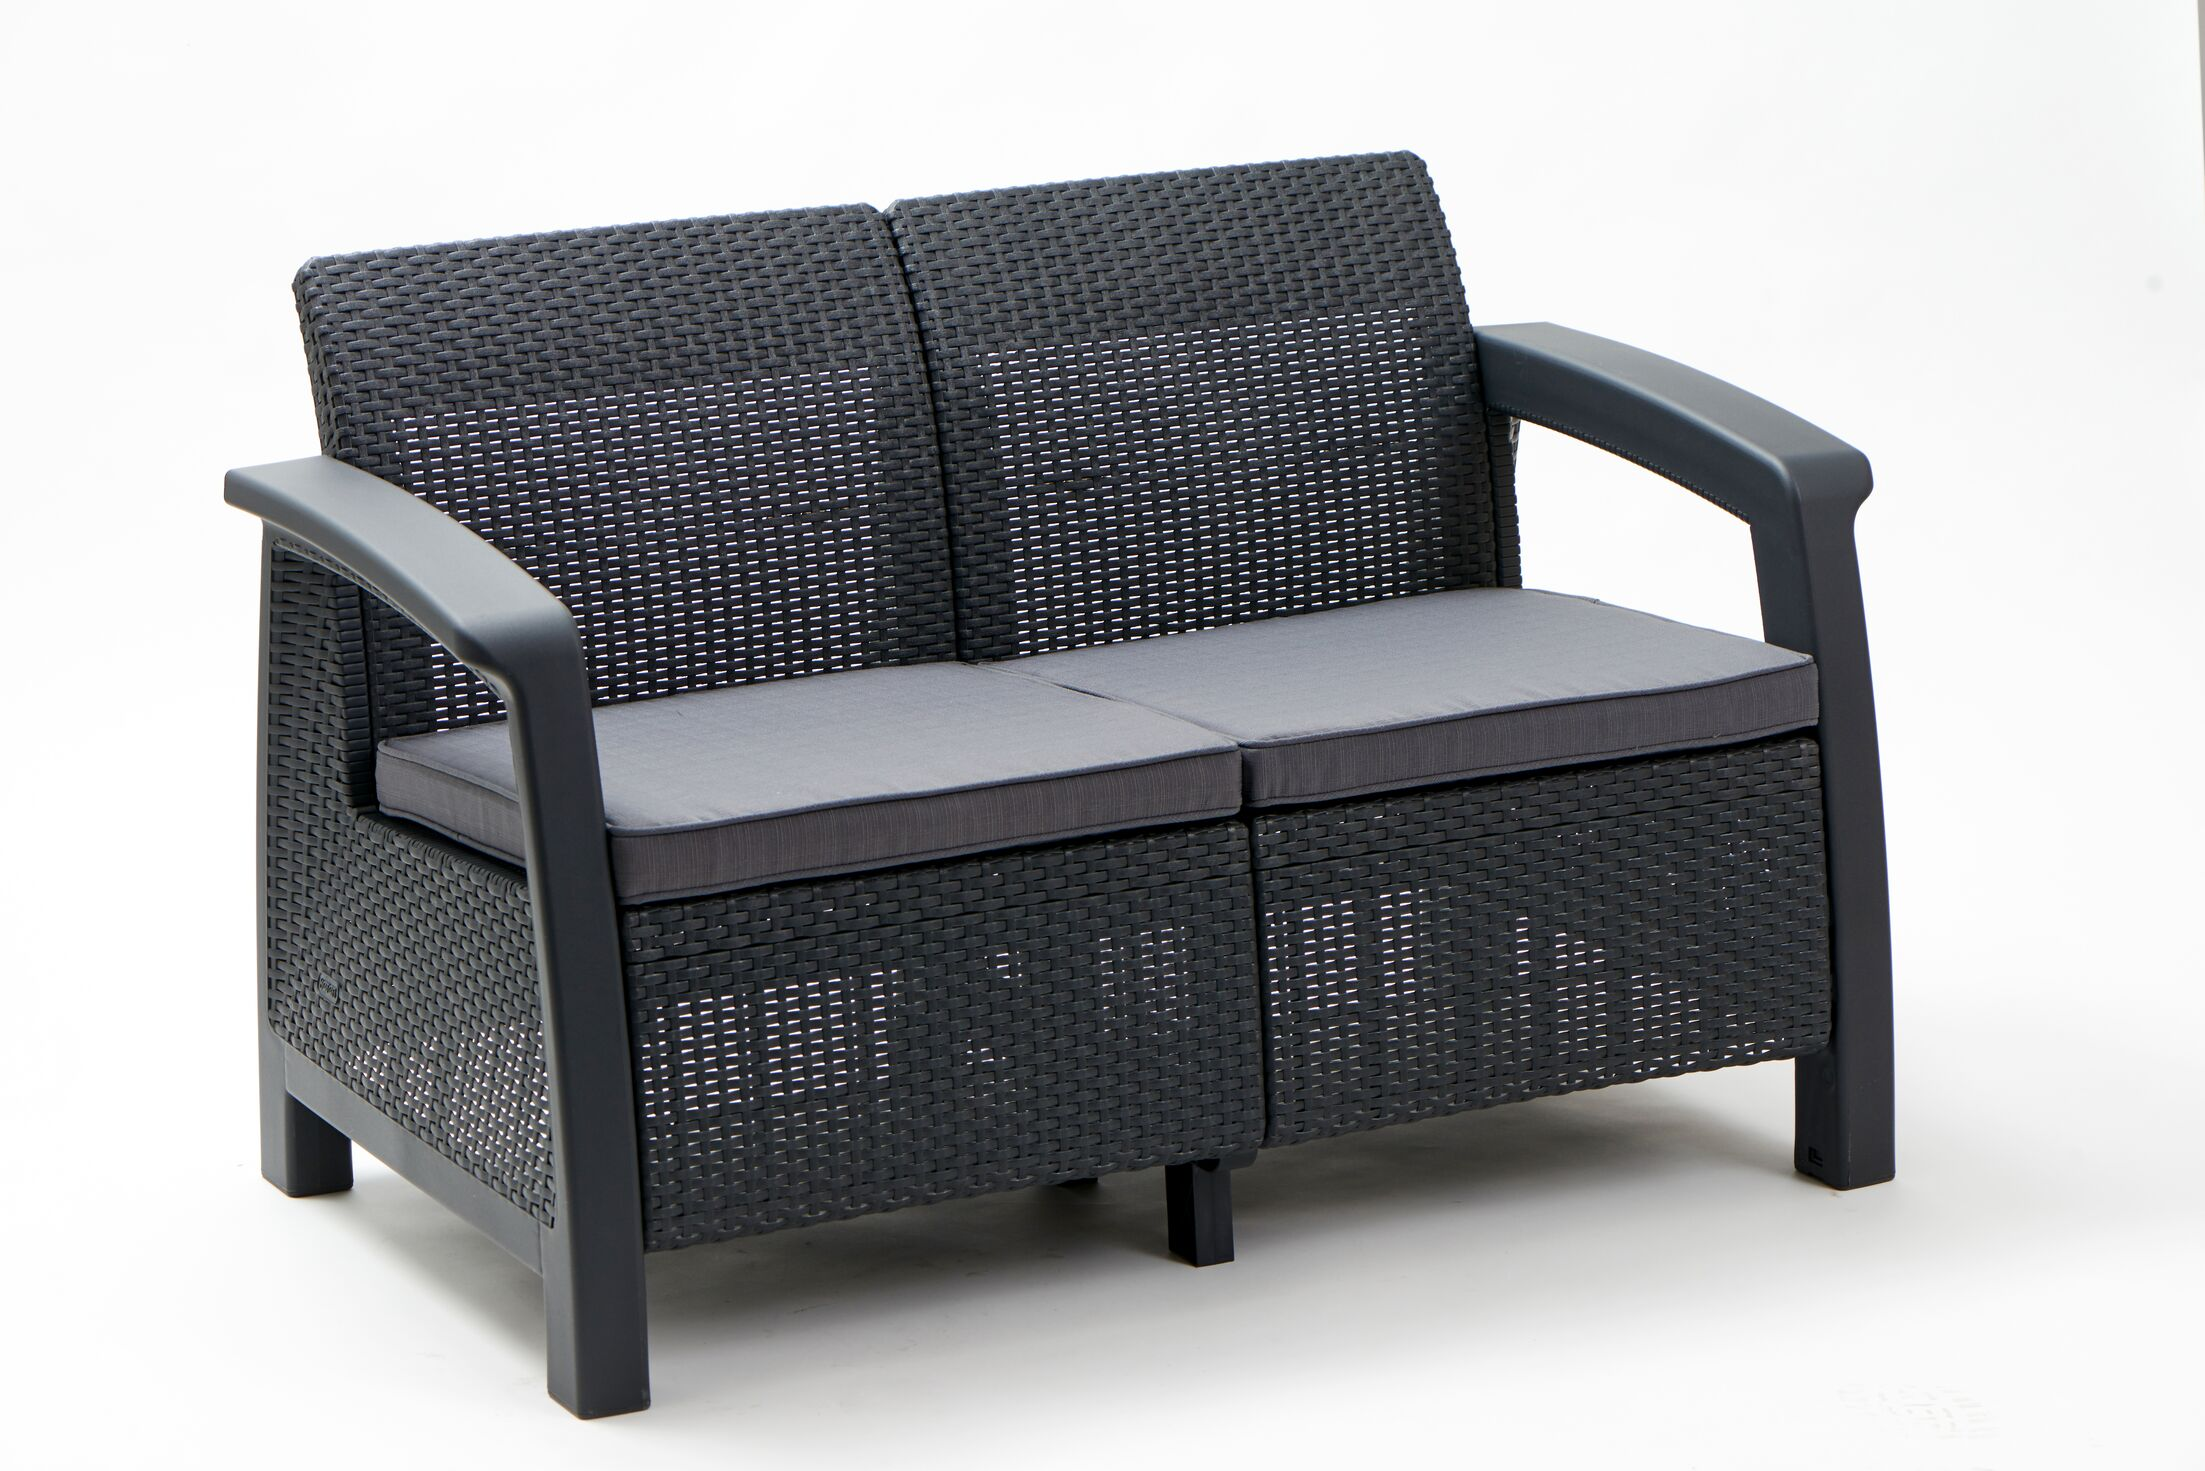 Berard Patio Loveseat with Cushions Color: Graphite, Arm Type: Smooth